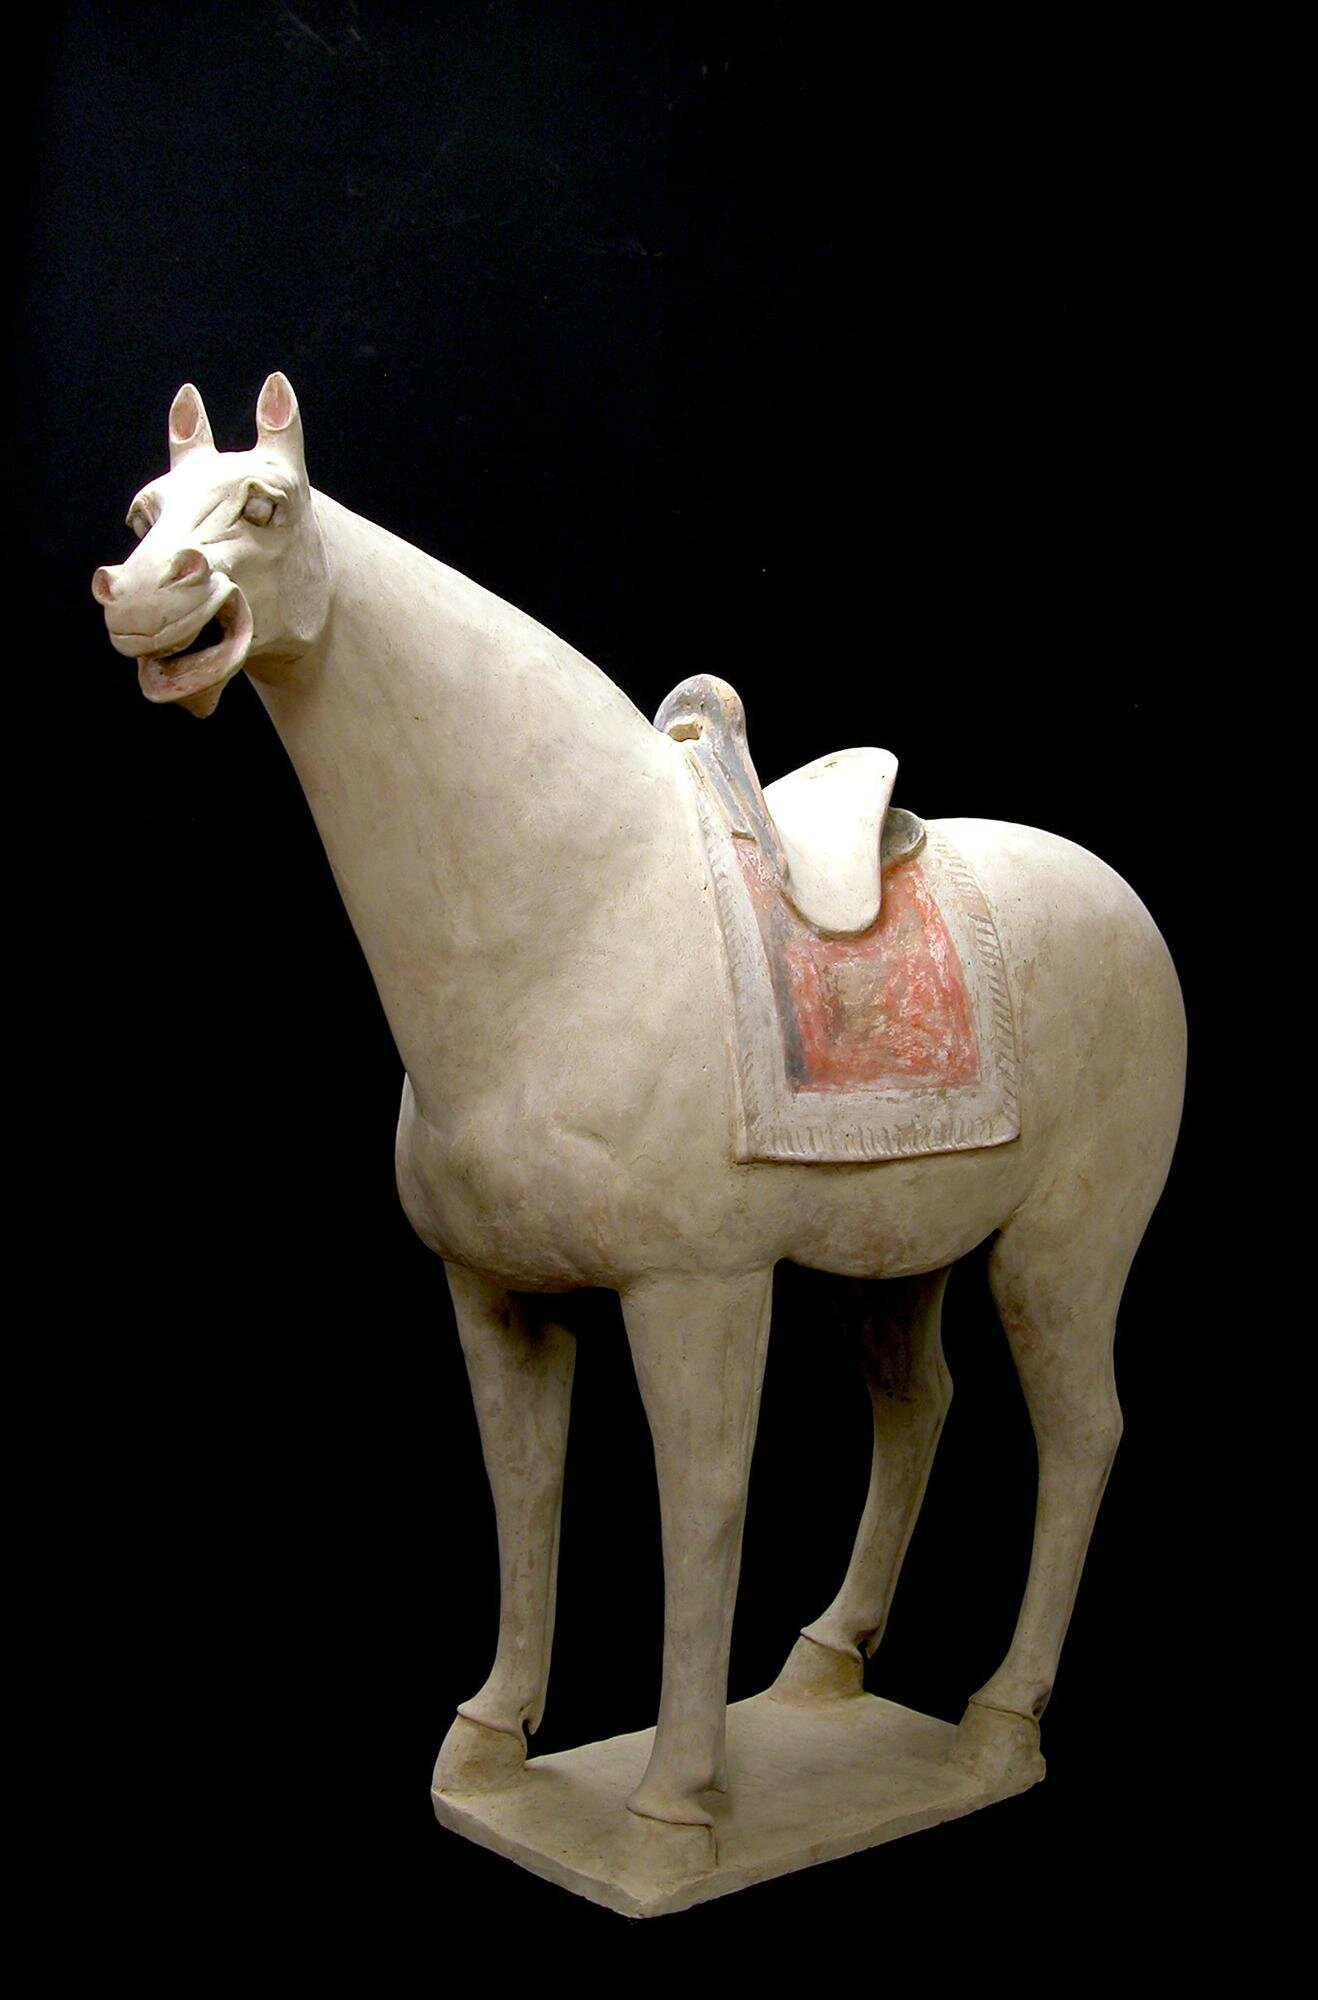 Large Terracotta Saddled Horse, China, Tang Dynasty (618-907)